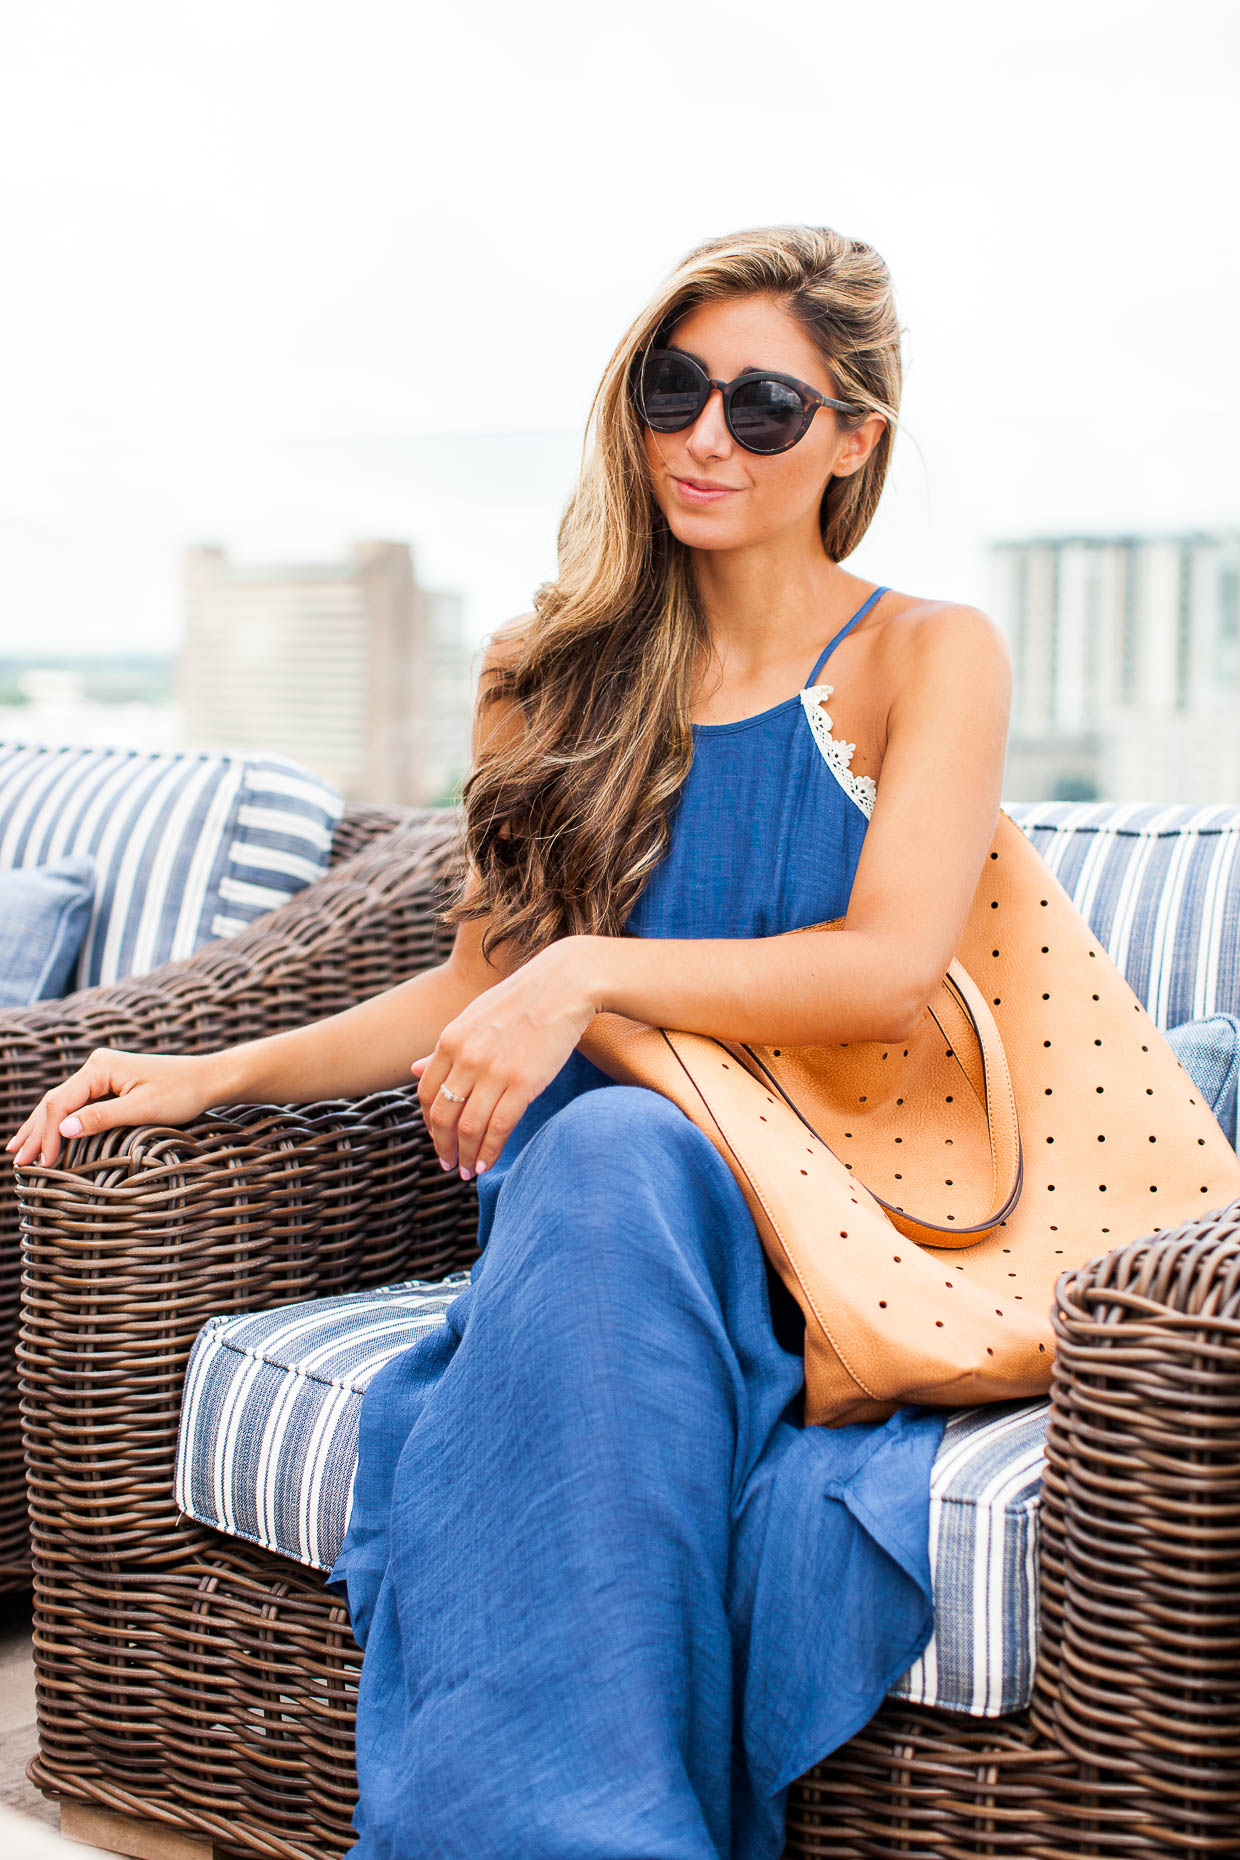 The Darling Detail is wearing a Love Squared Crochet Trim Maxi Dress, along with the Sole Society Farrow Tote and Garey Cateye Sunnies.